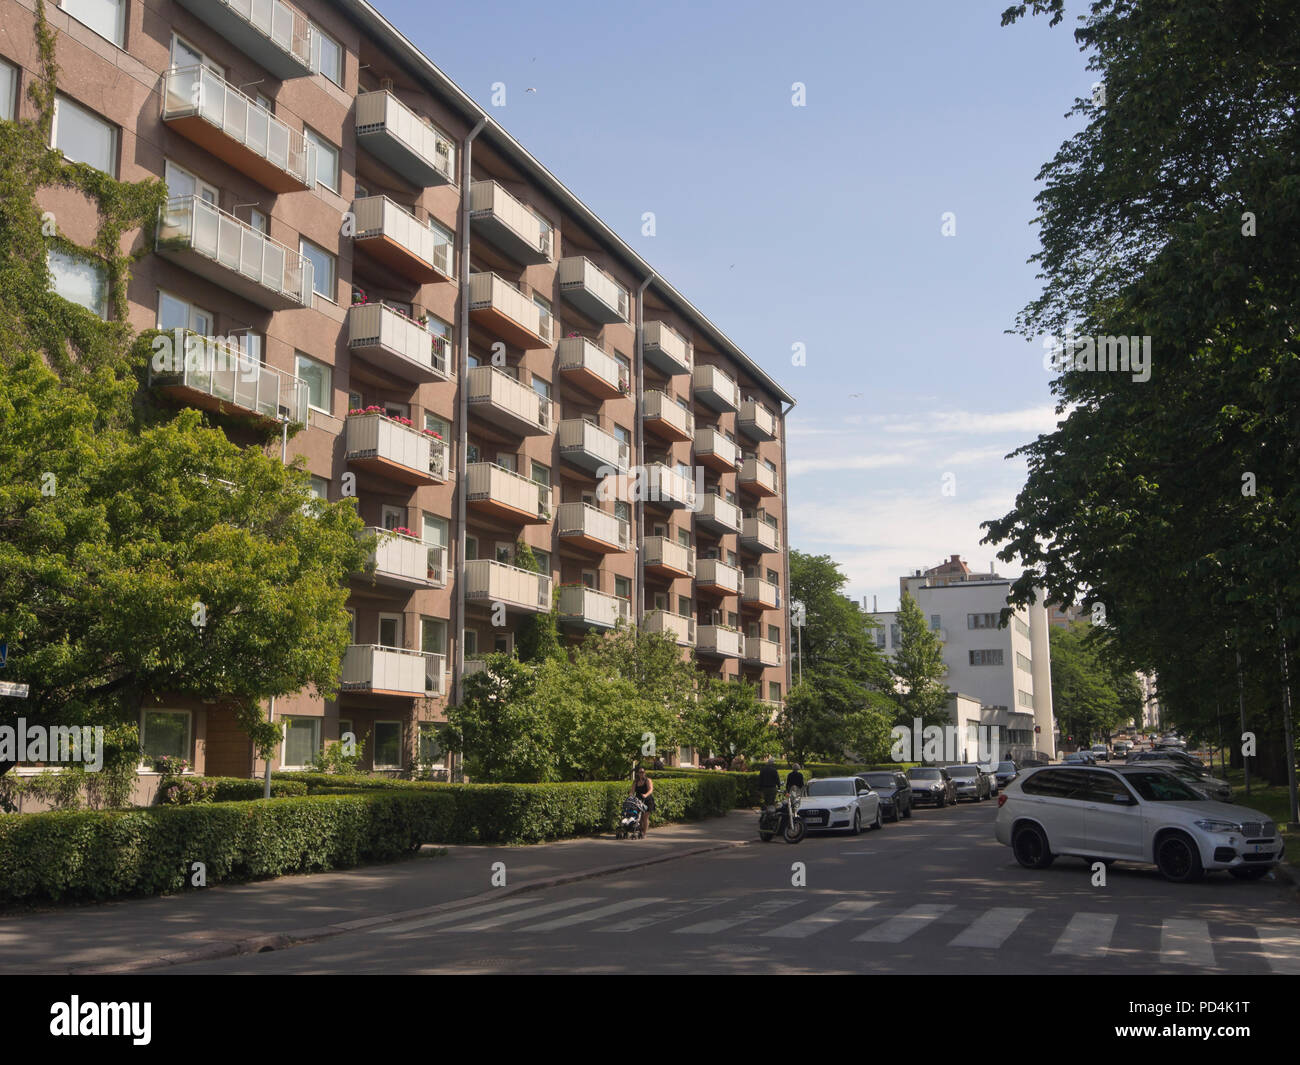 Residential area in the Tölö  district of Helsinki Finland apartment block with balconies, low hedge and parked vehicles on a quiet street - Stock Image